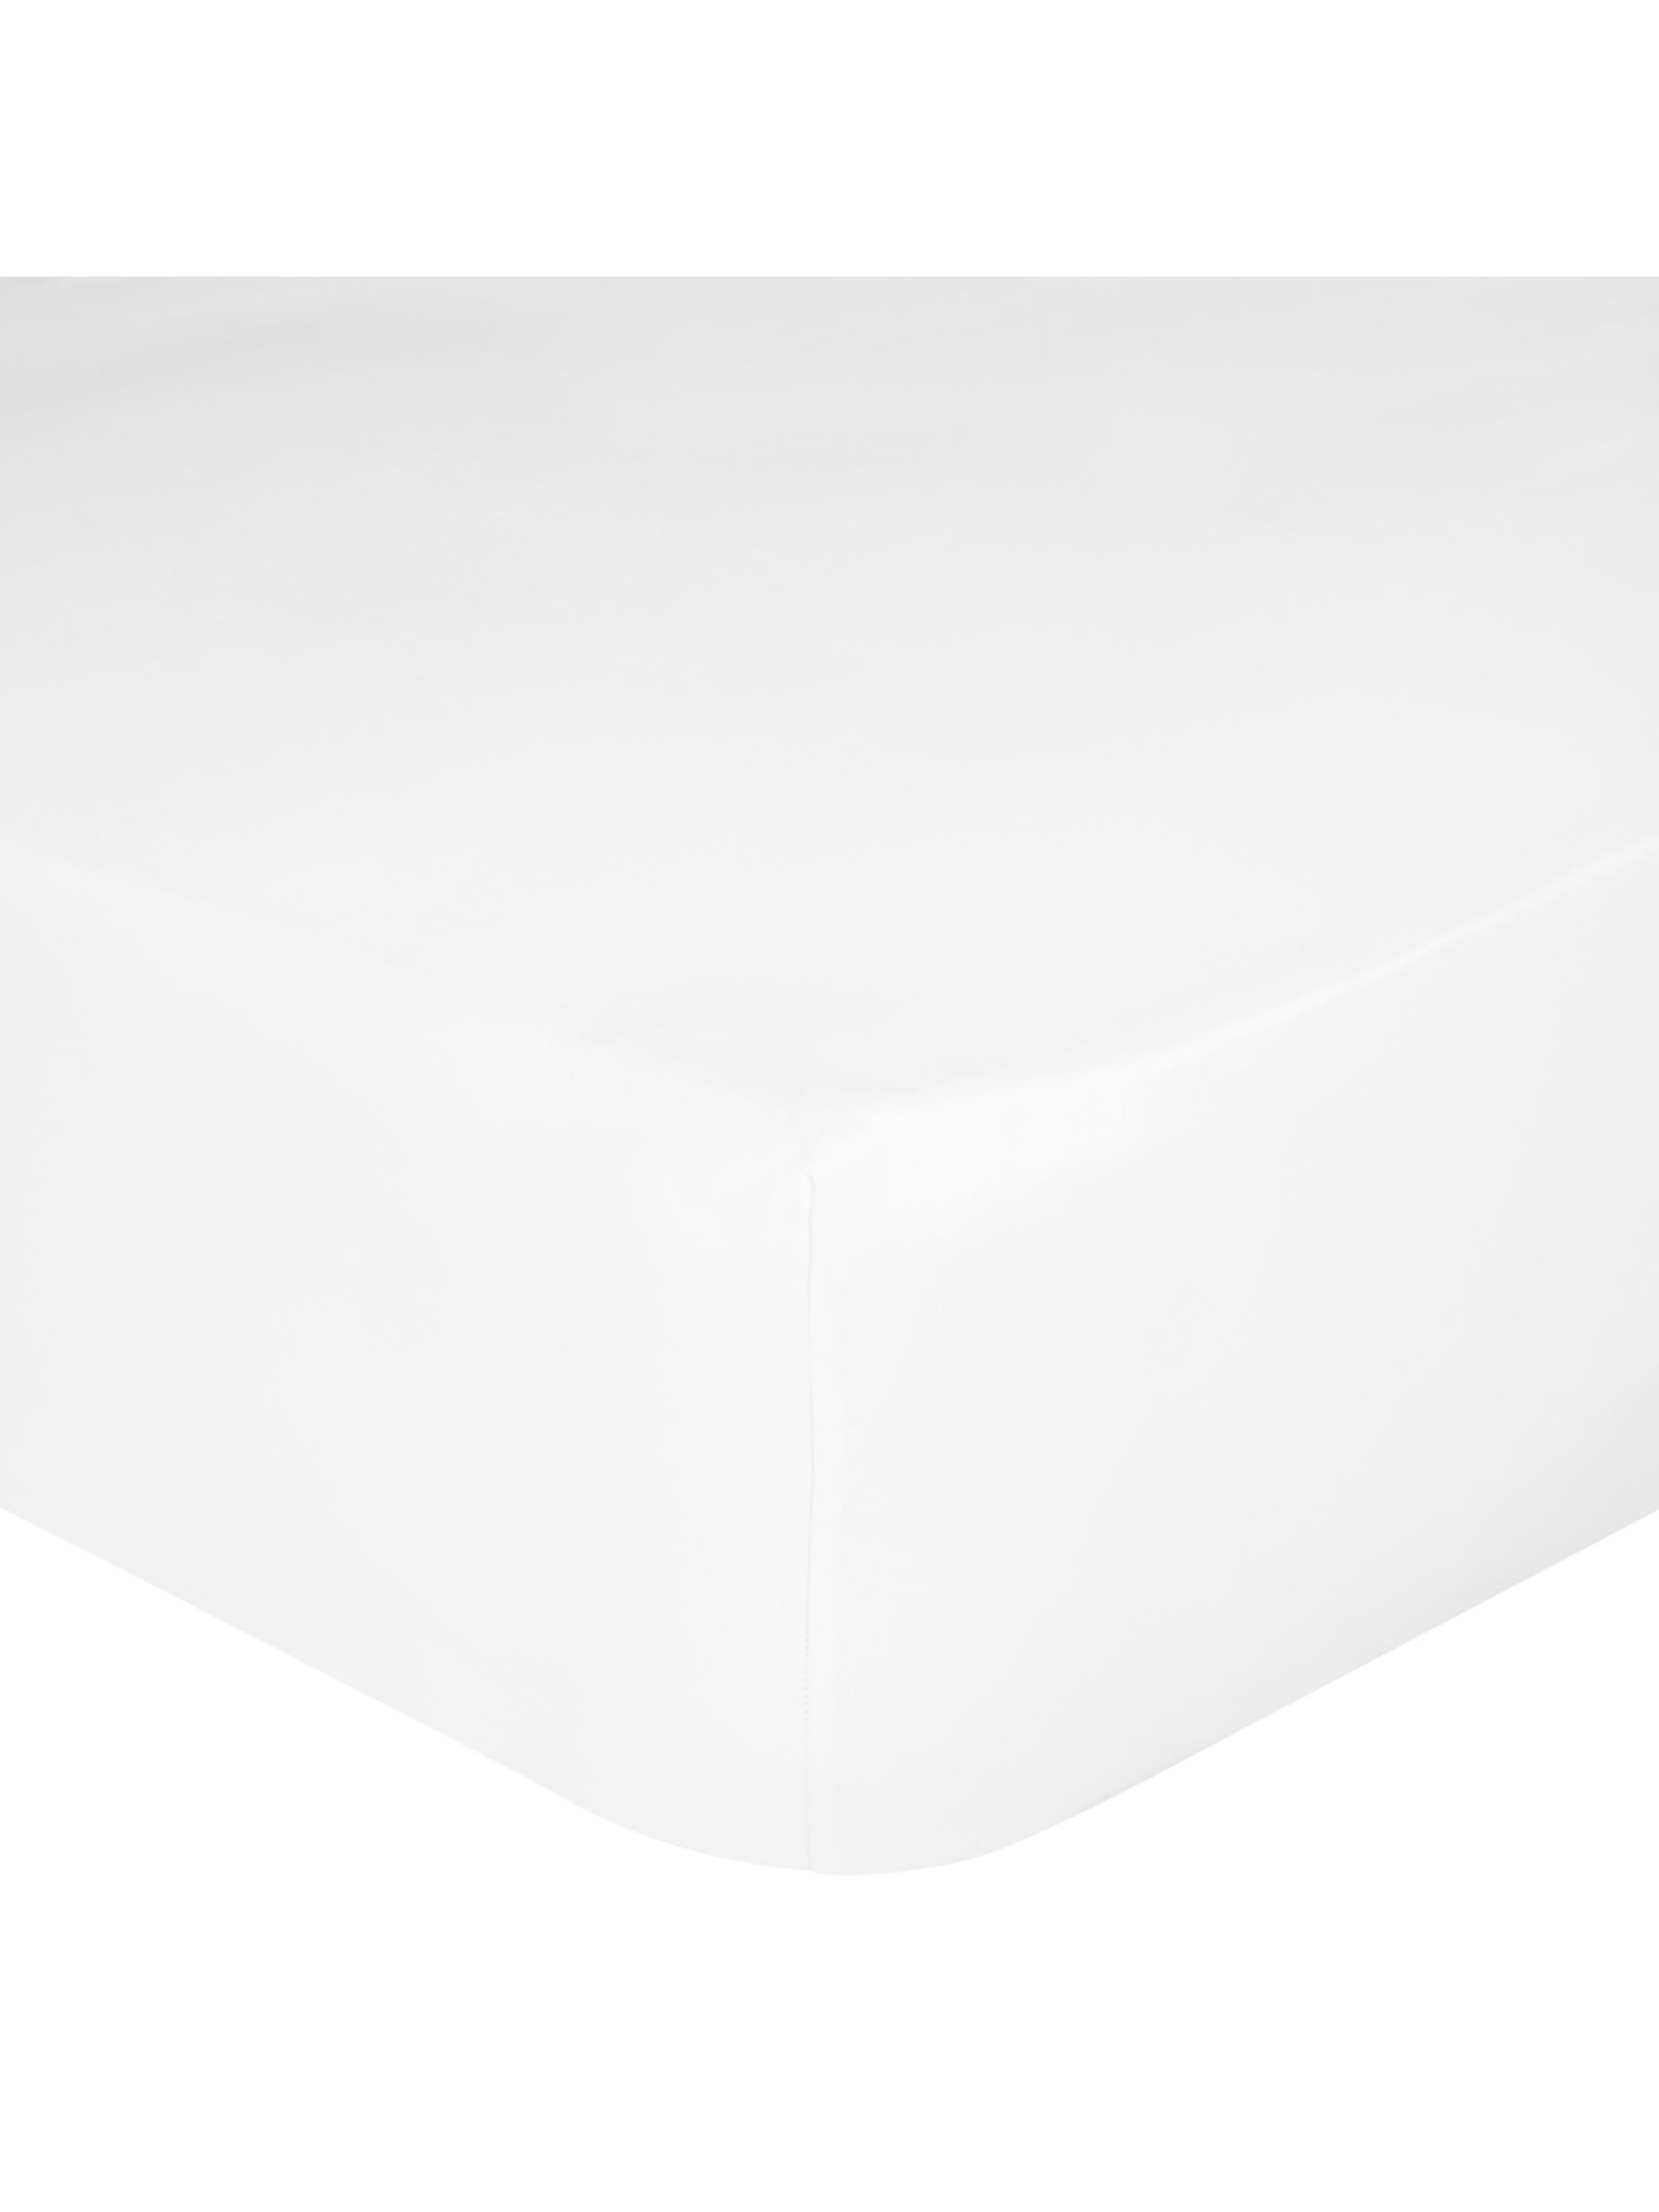 John Lewis & Partners The Ultimate Collection 1200 Thread Count Cotton Deep Fitted Sheet